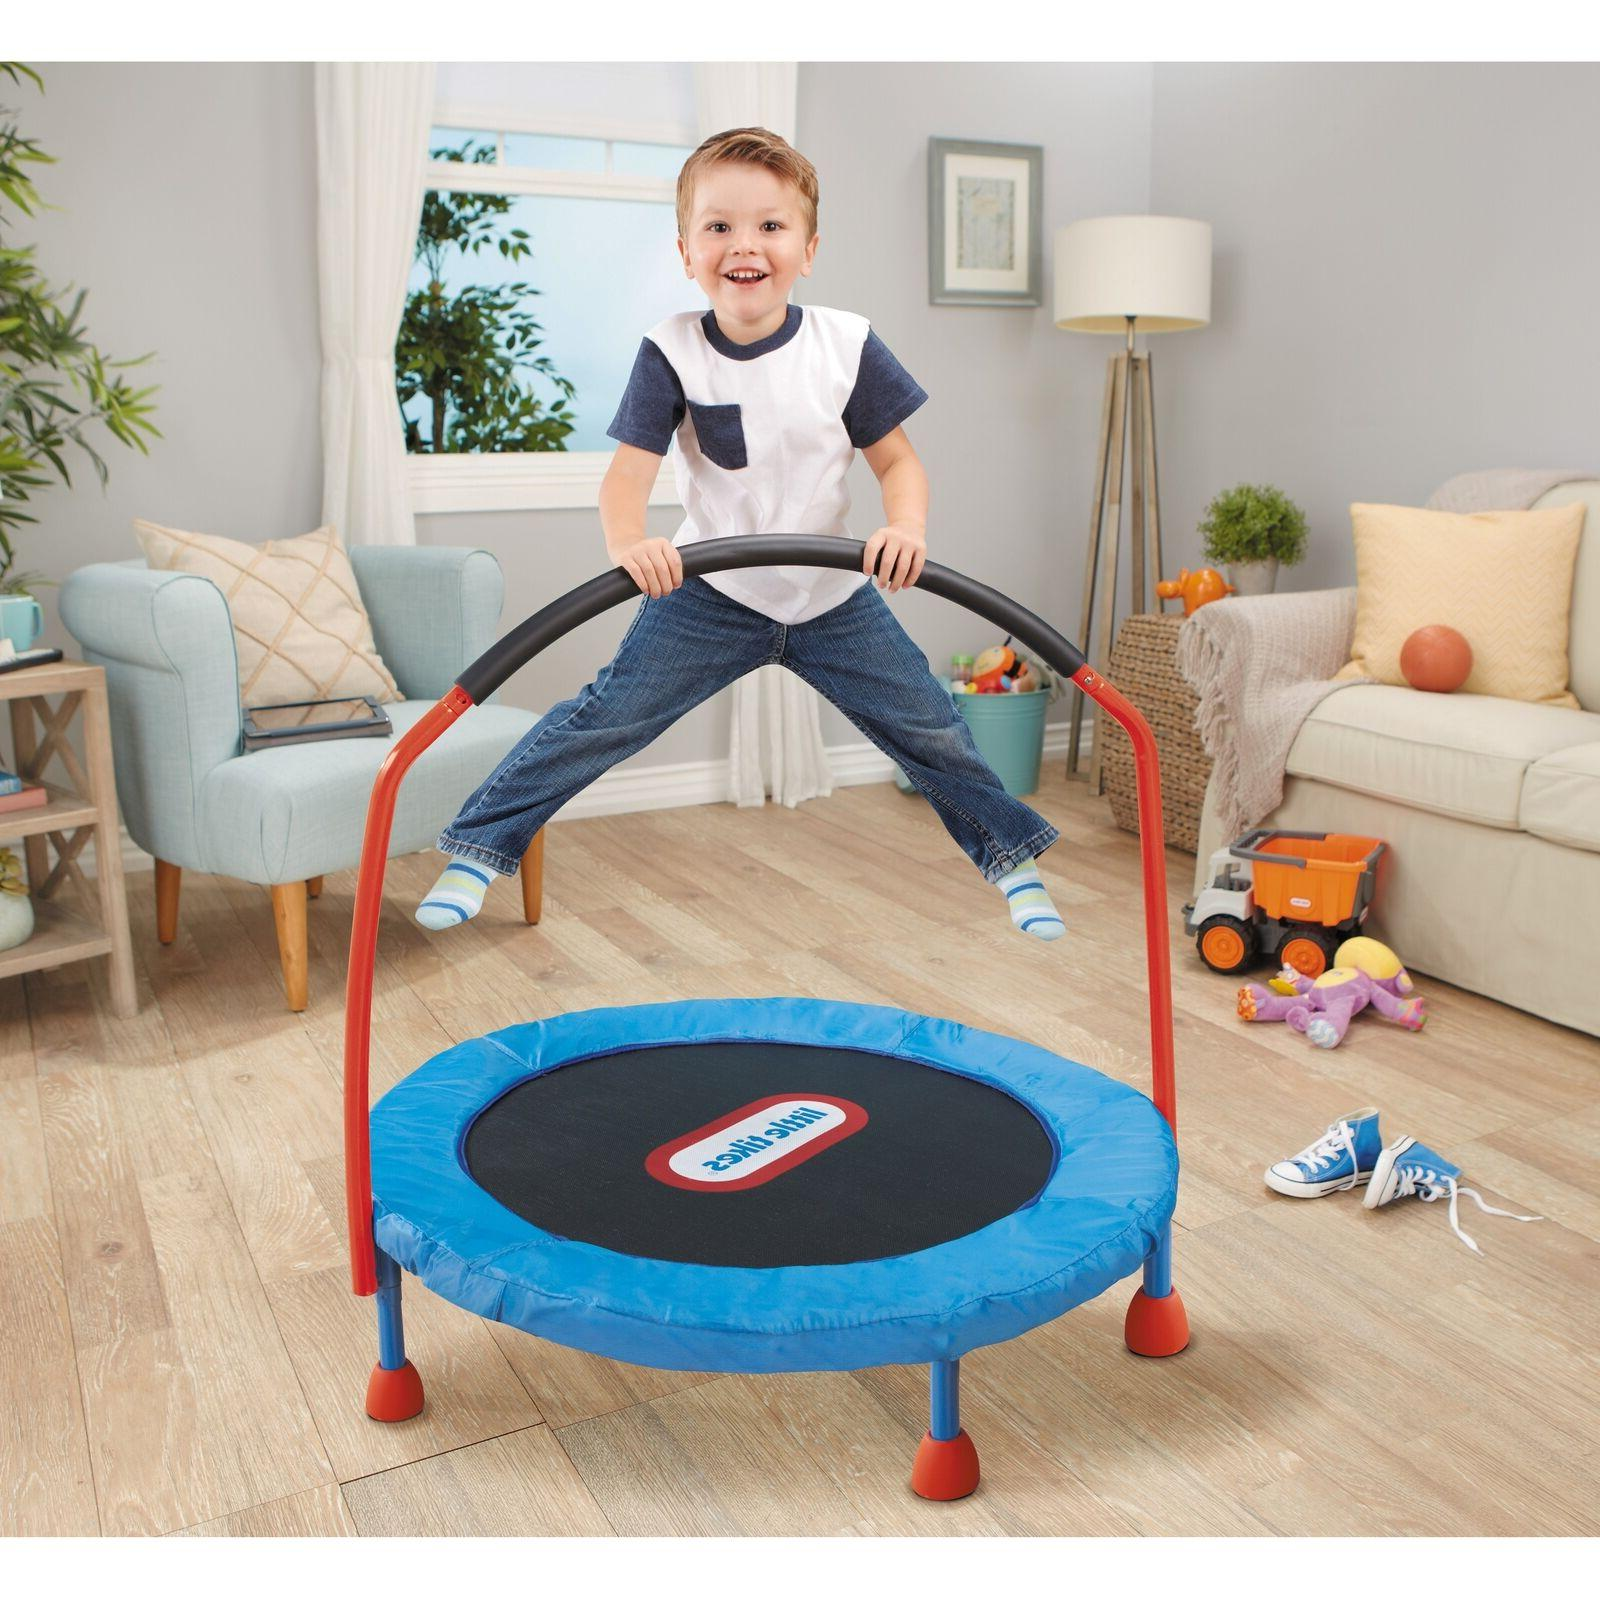 Little Tikes Easy Store 3-Foot Trampoline, with Foam Hand Ra